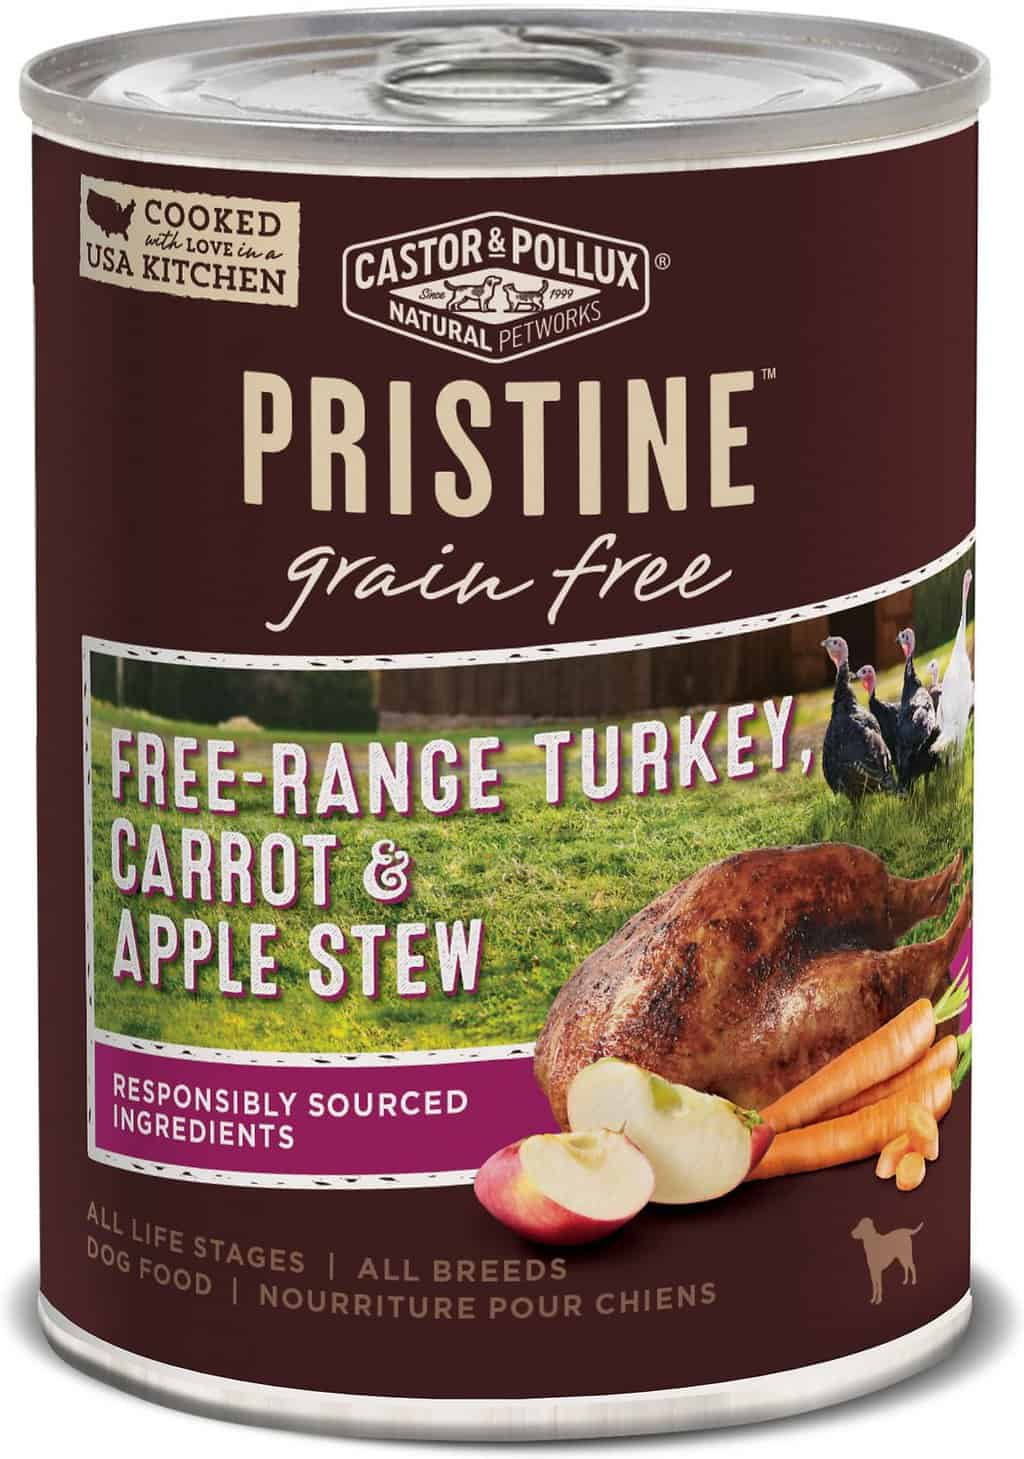 Castor and Pollux Dog Food: 2021 Review, Recalls & Coupons 17